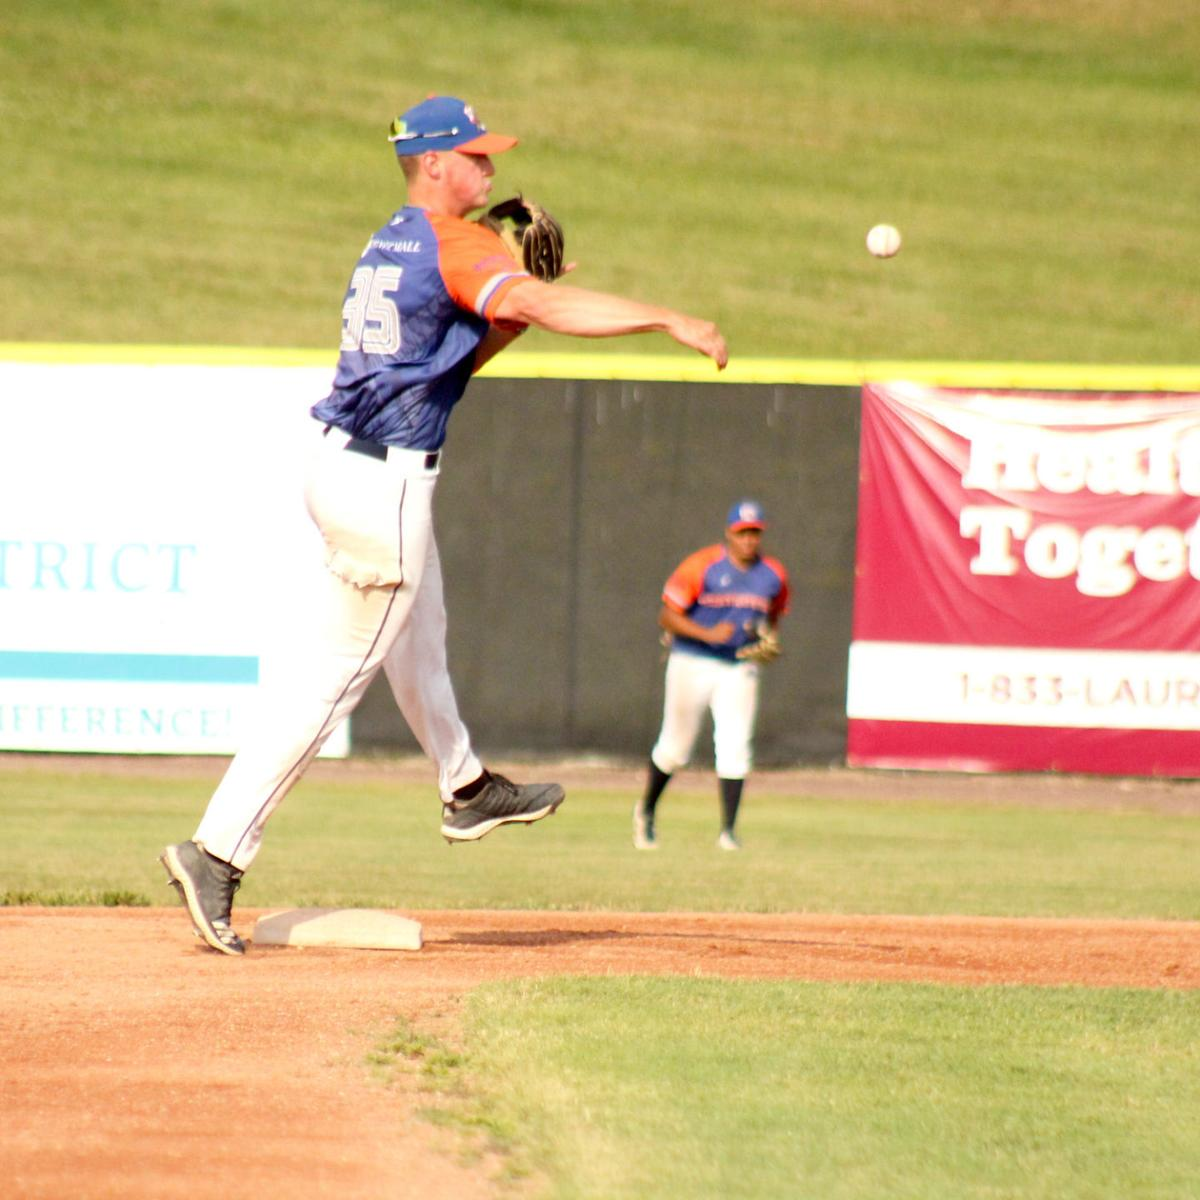 Devan Nail makes the out from shortstop